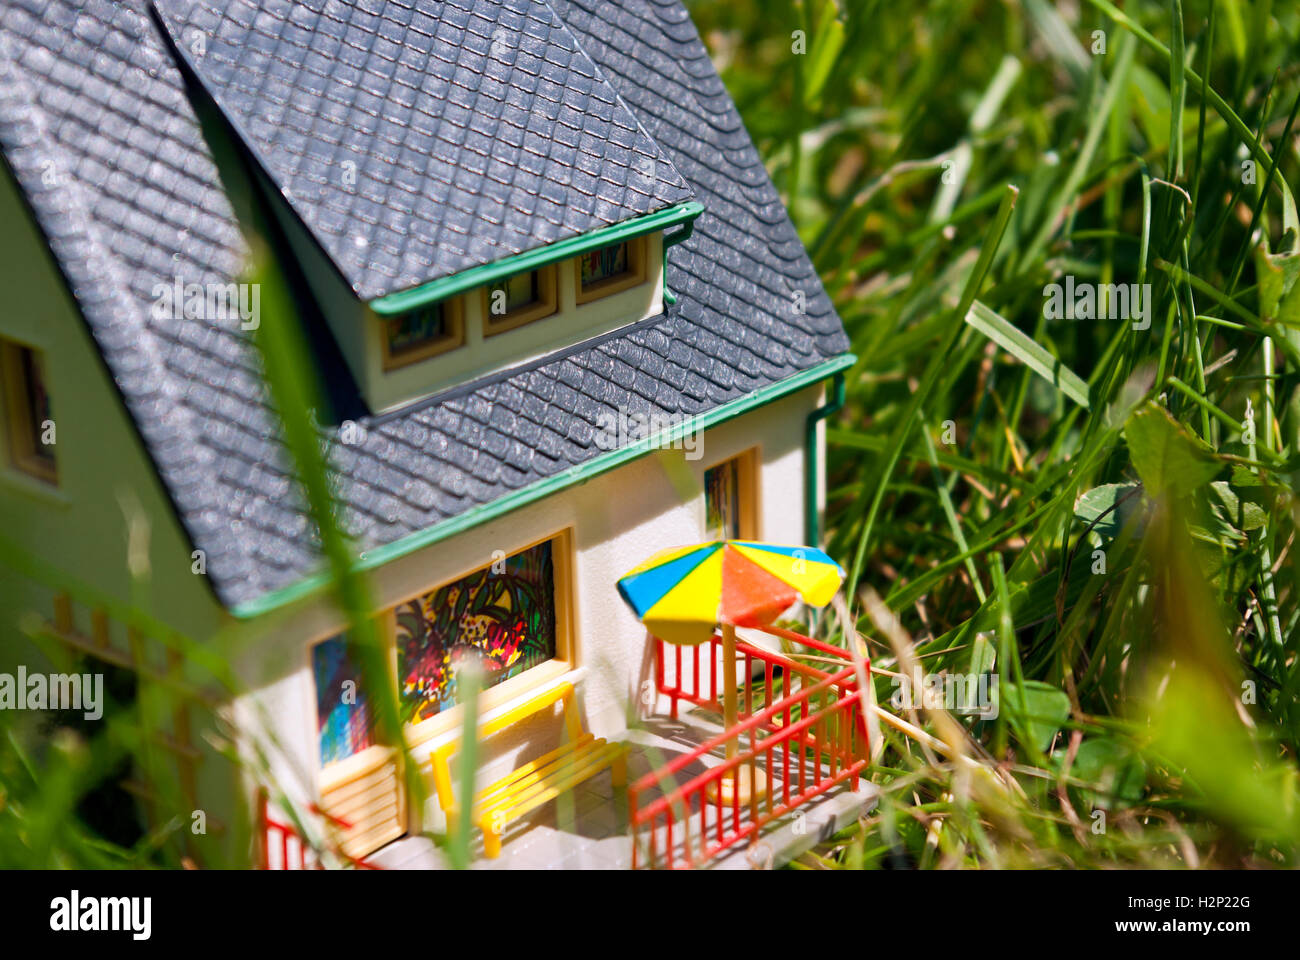 big close up of house in grass - Stock Image